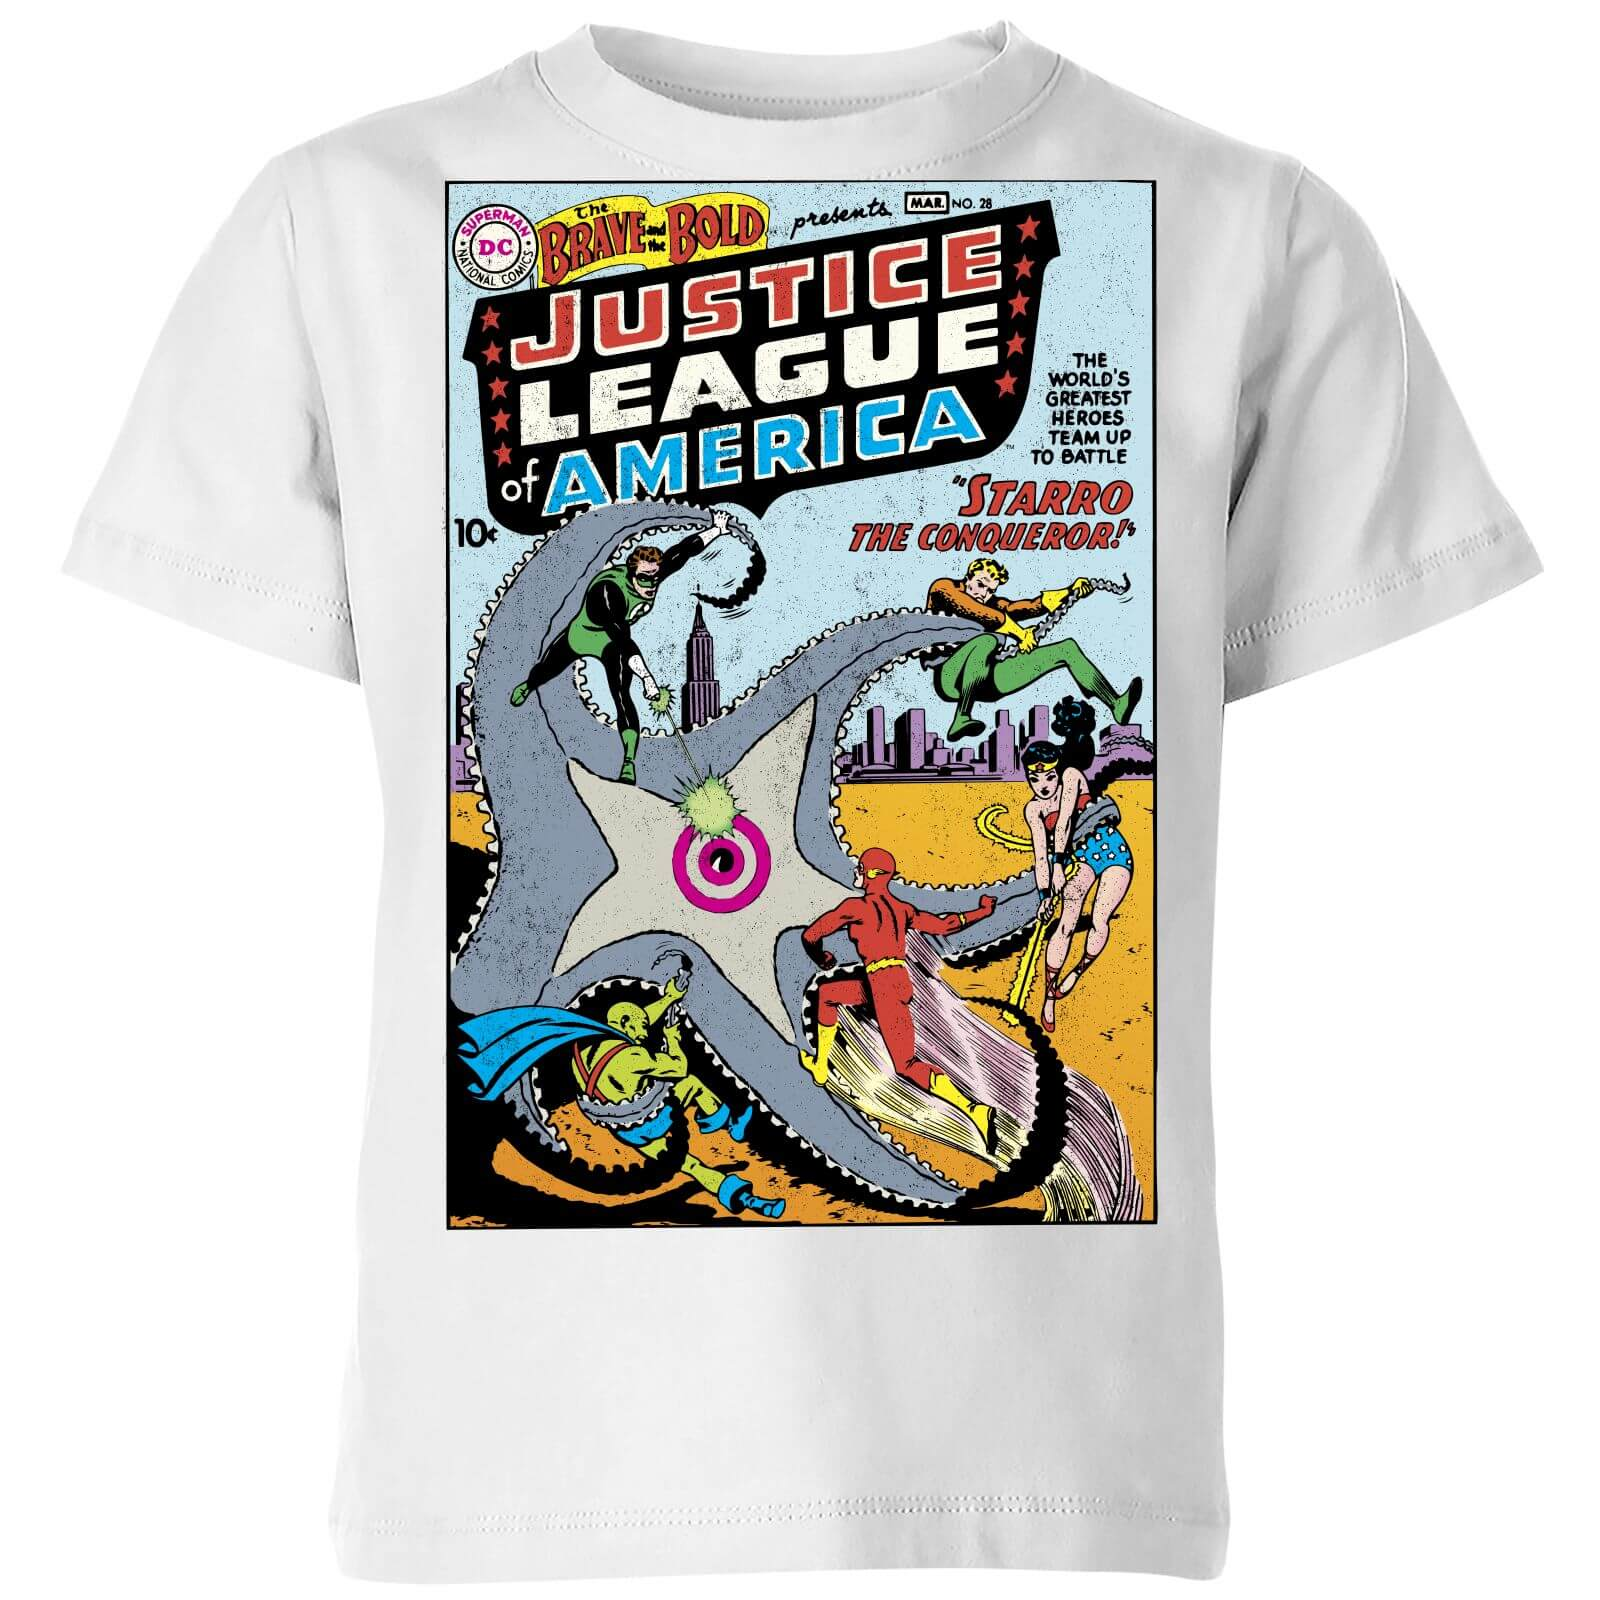 dfb8cf9d1e6 Justice League Starro The Conqueror Cover Kids' T-Shirt - White Clothing |  Zavvi